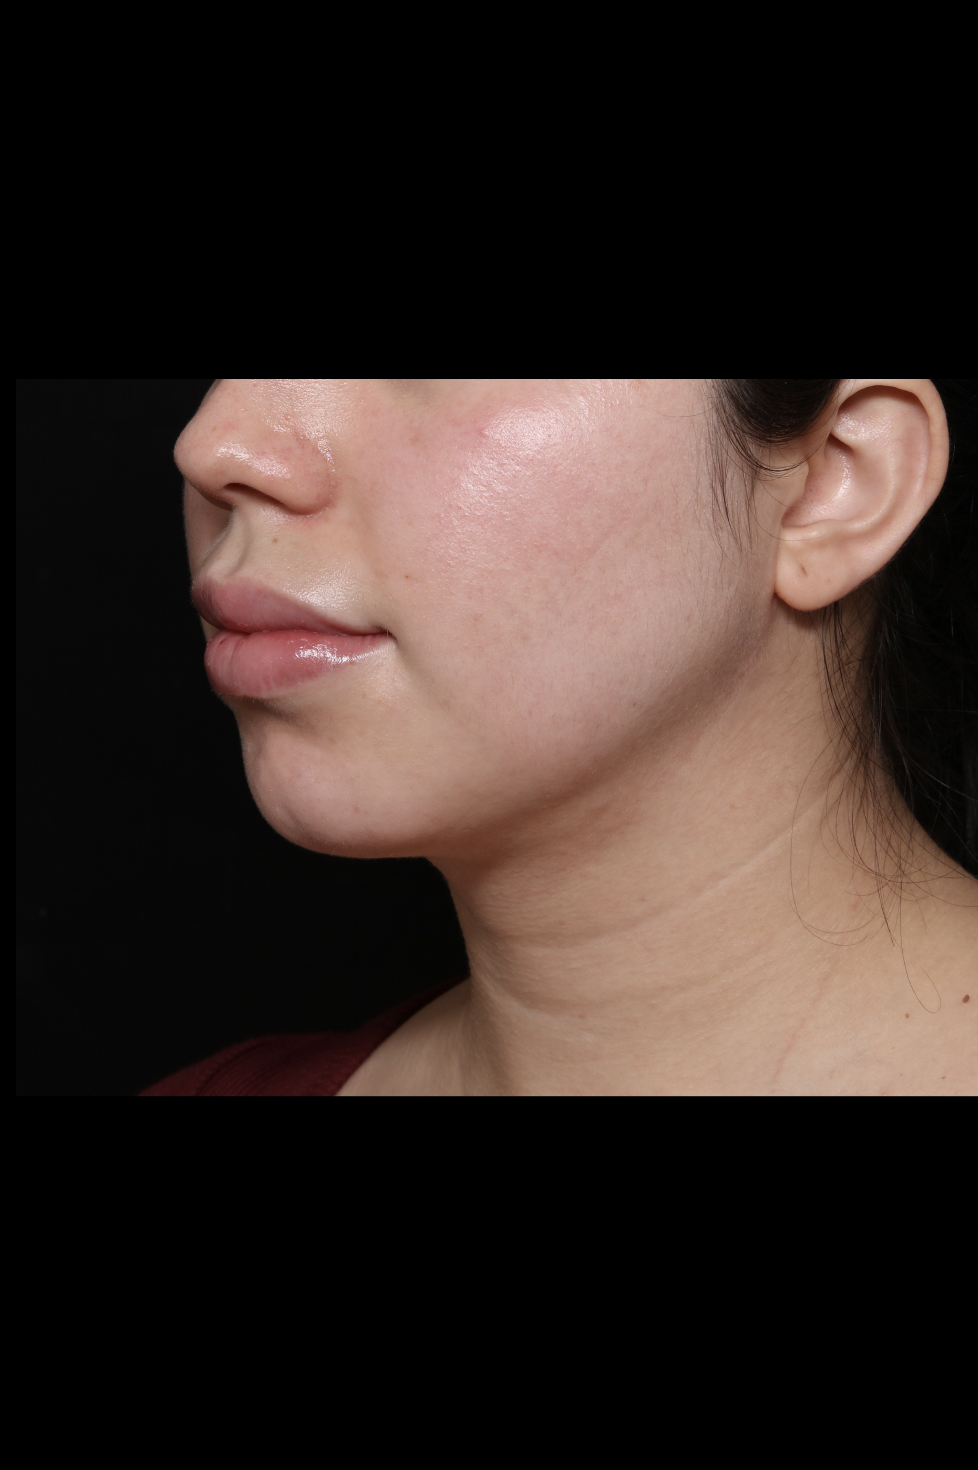 After Neck Liposuction - Facial Transformation